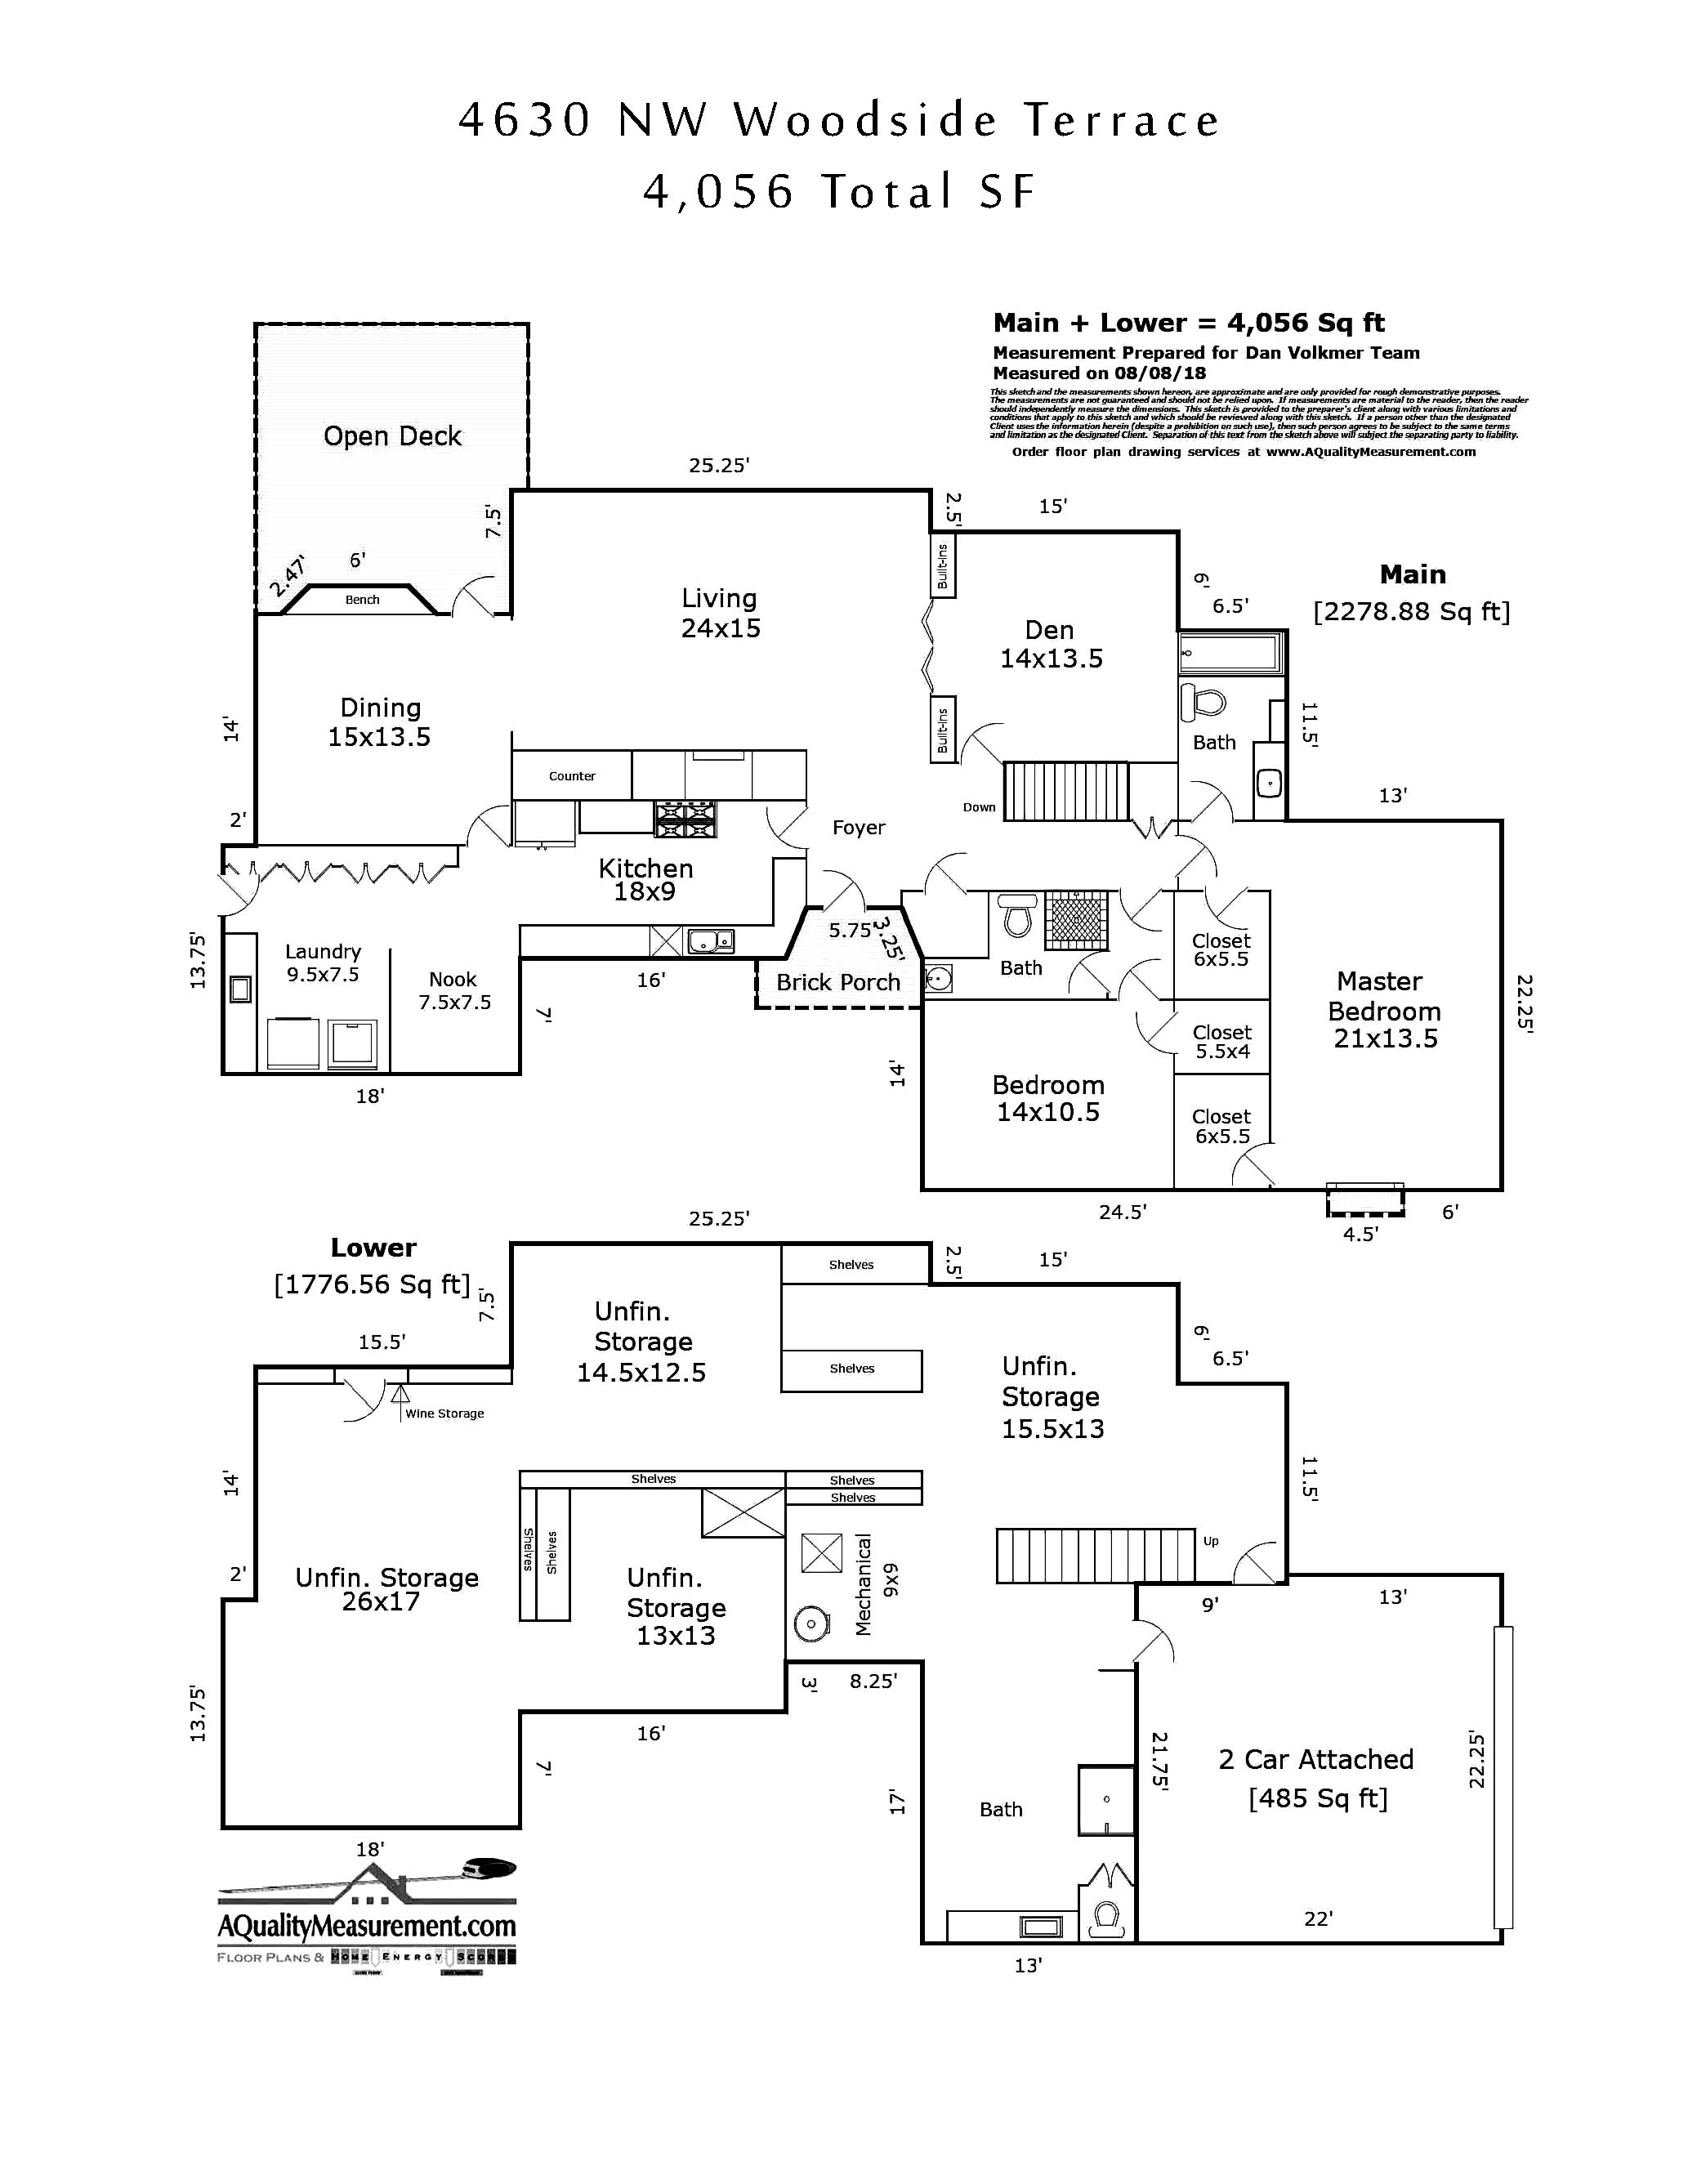 4630 Nw Woodside Terrace Spin Virtual Tours